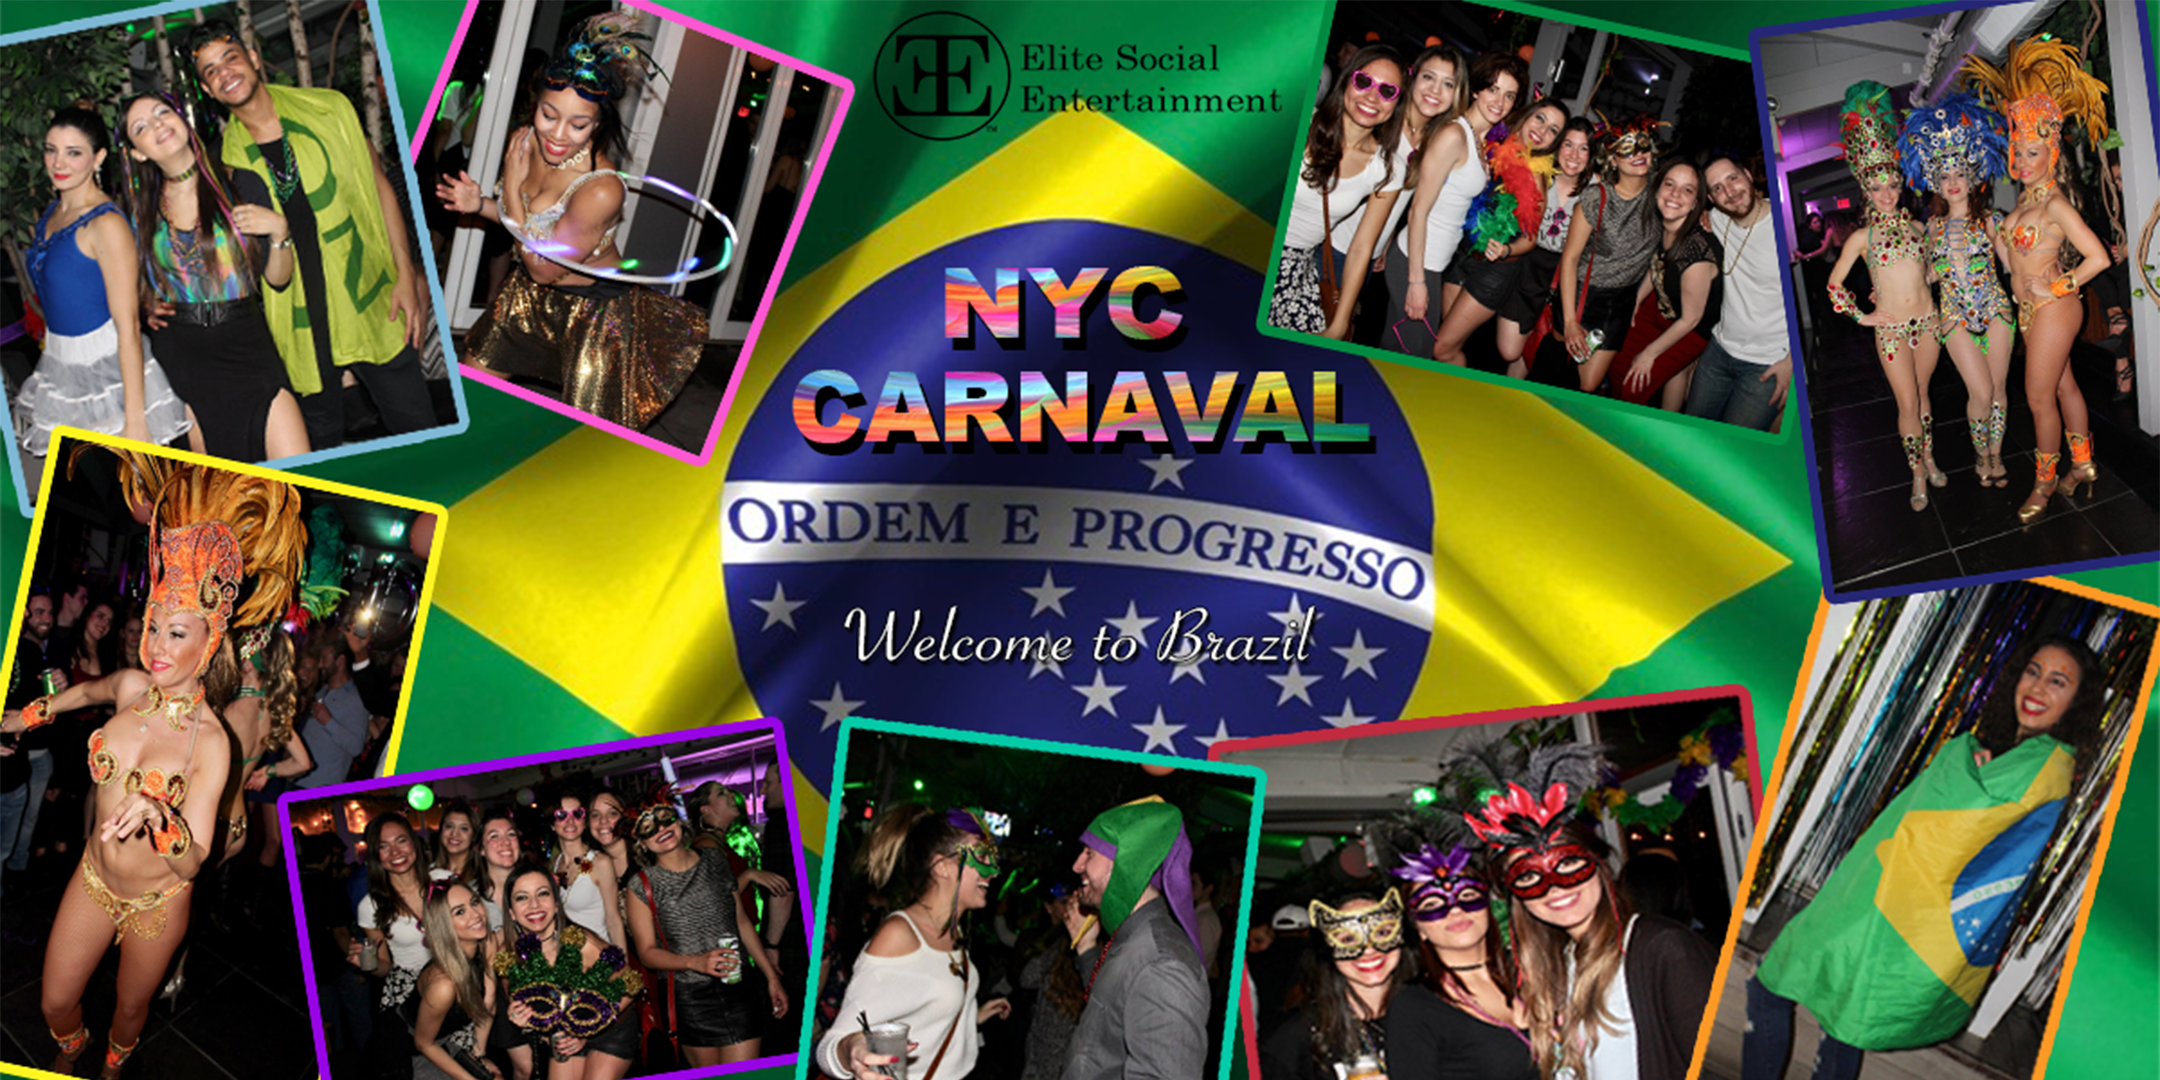 Carnaval - New York City, NY